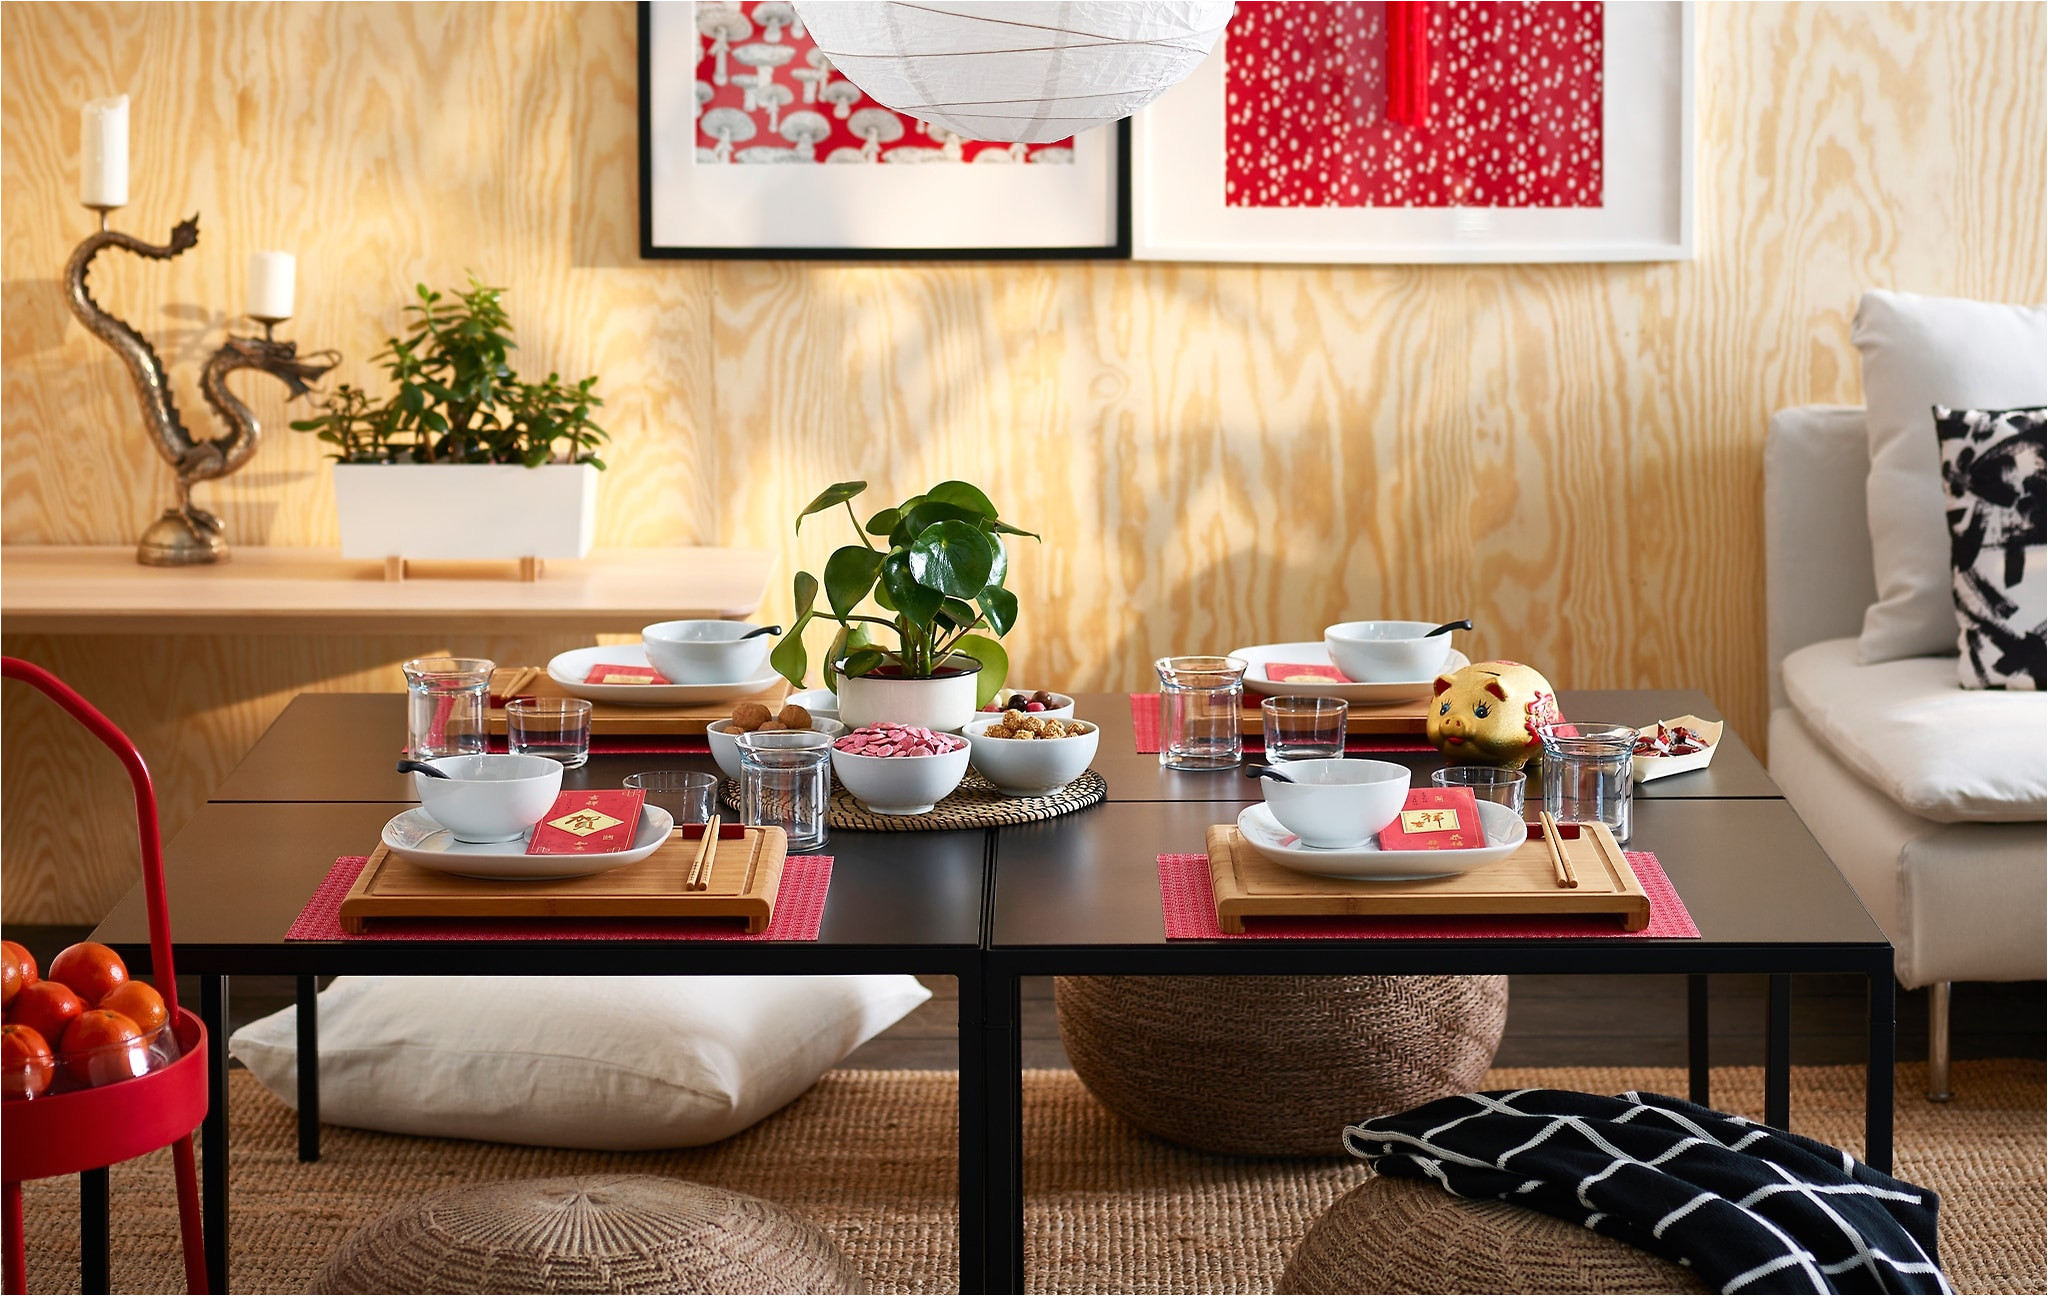 setting the table with some rimforsa chopping boards in bamboo is one idea on how to